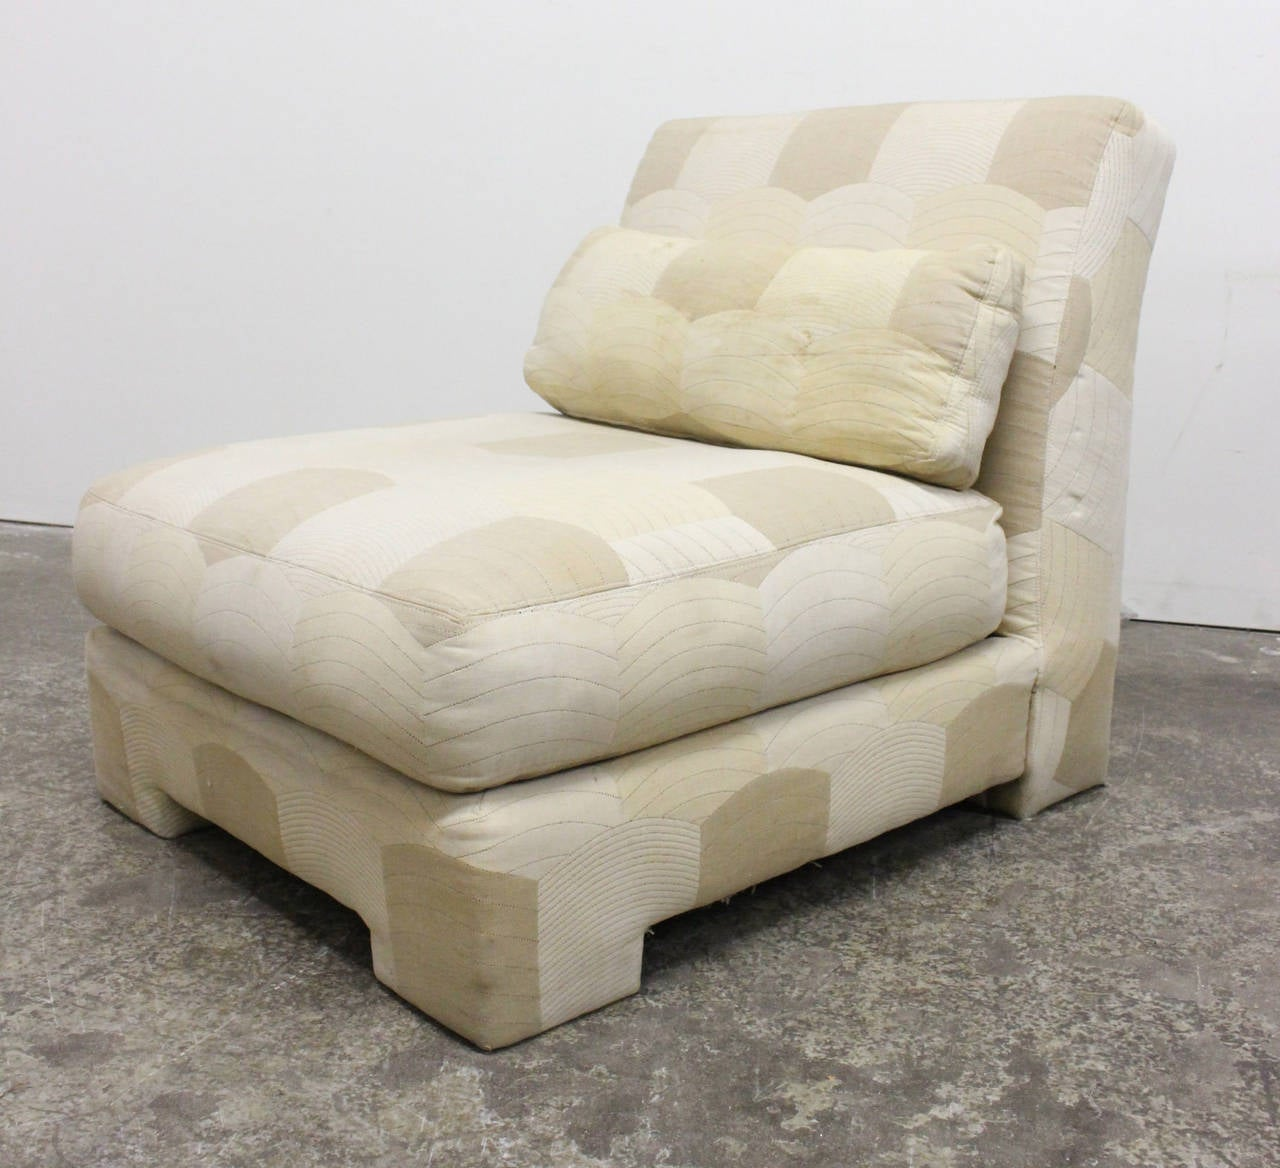 20th Century Pair of Slipper Lounge Chairs by Milo Baughman for Thayer Coggin For Sale